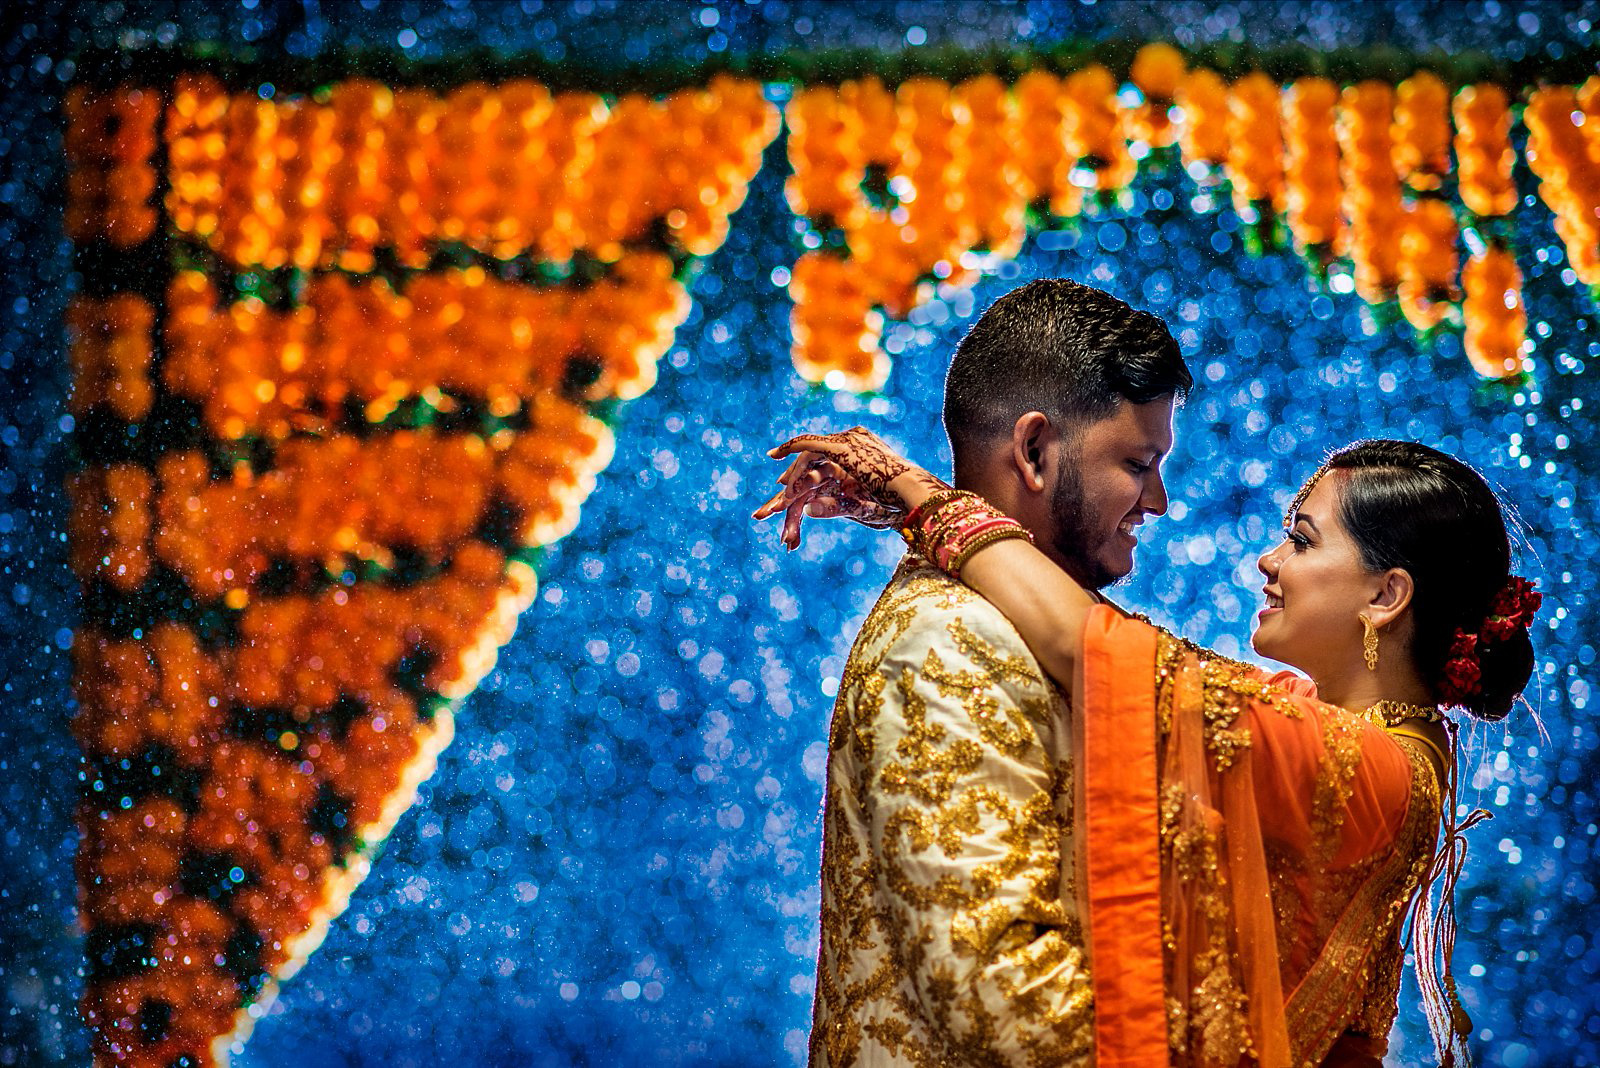 Hindu couple in the rain creative wedding photo